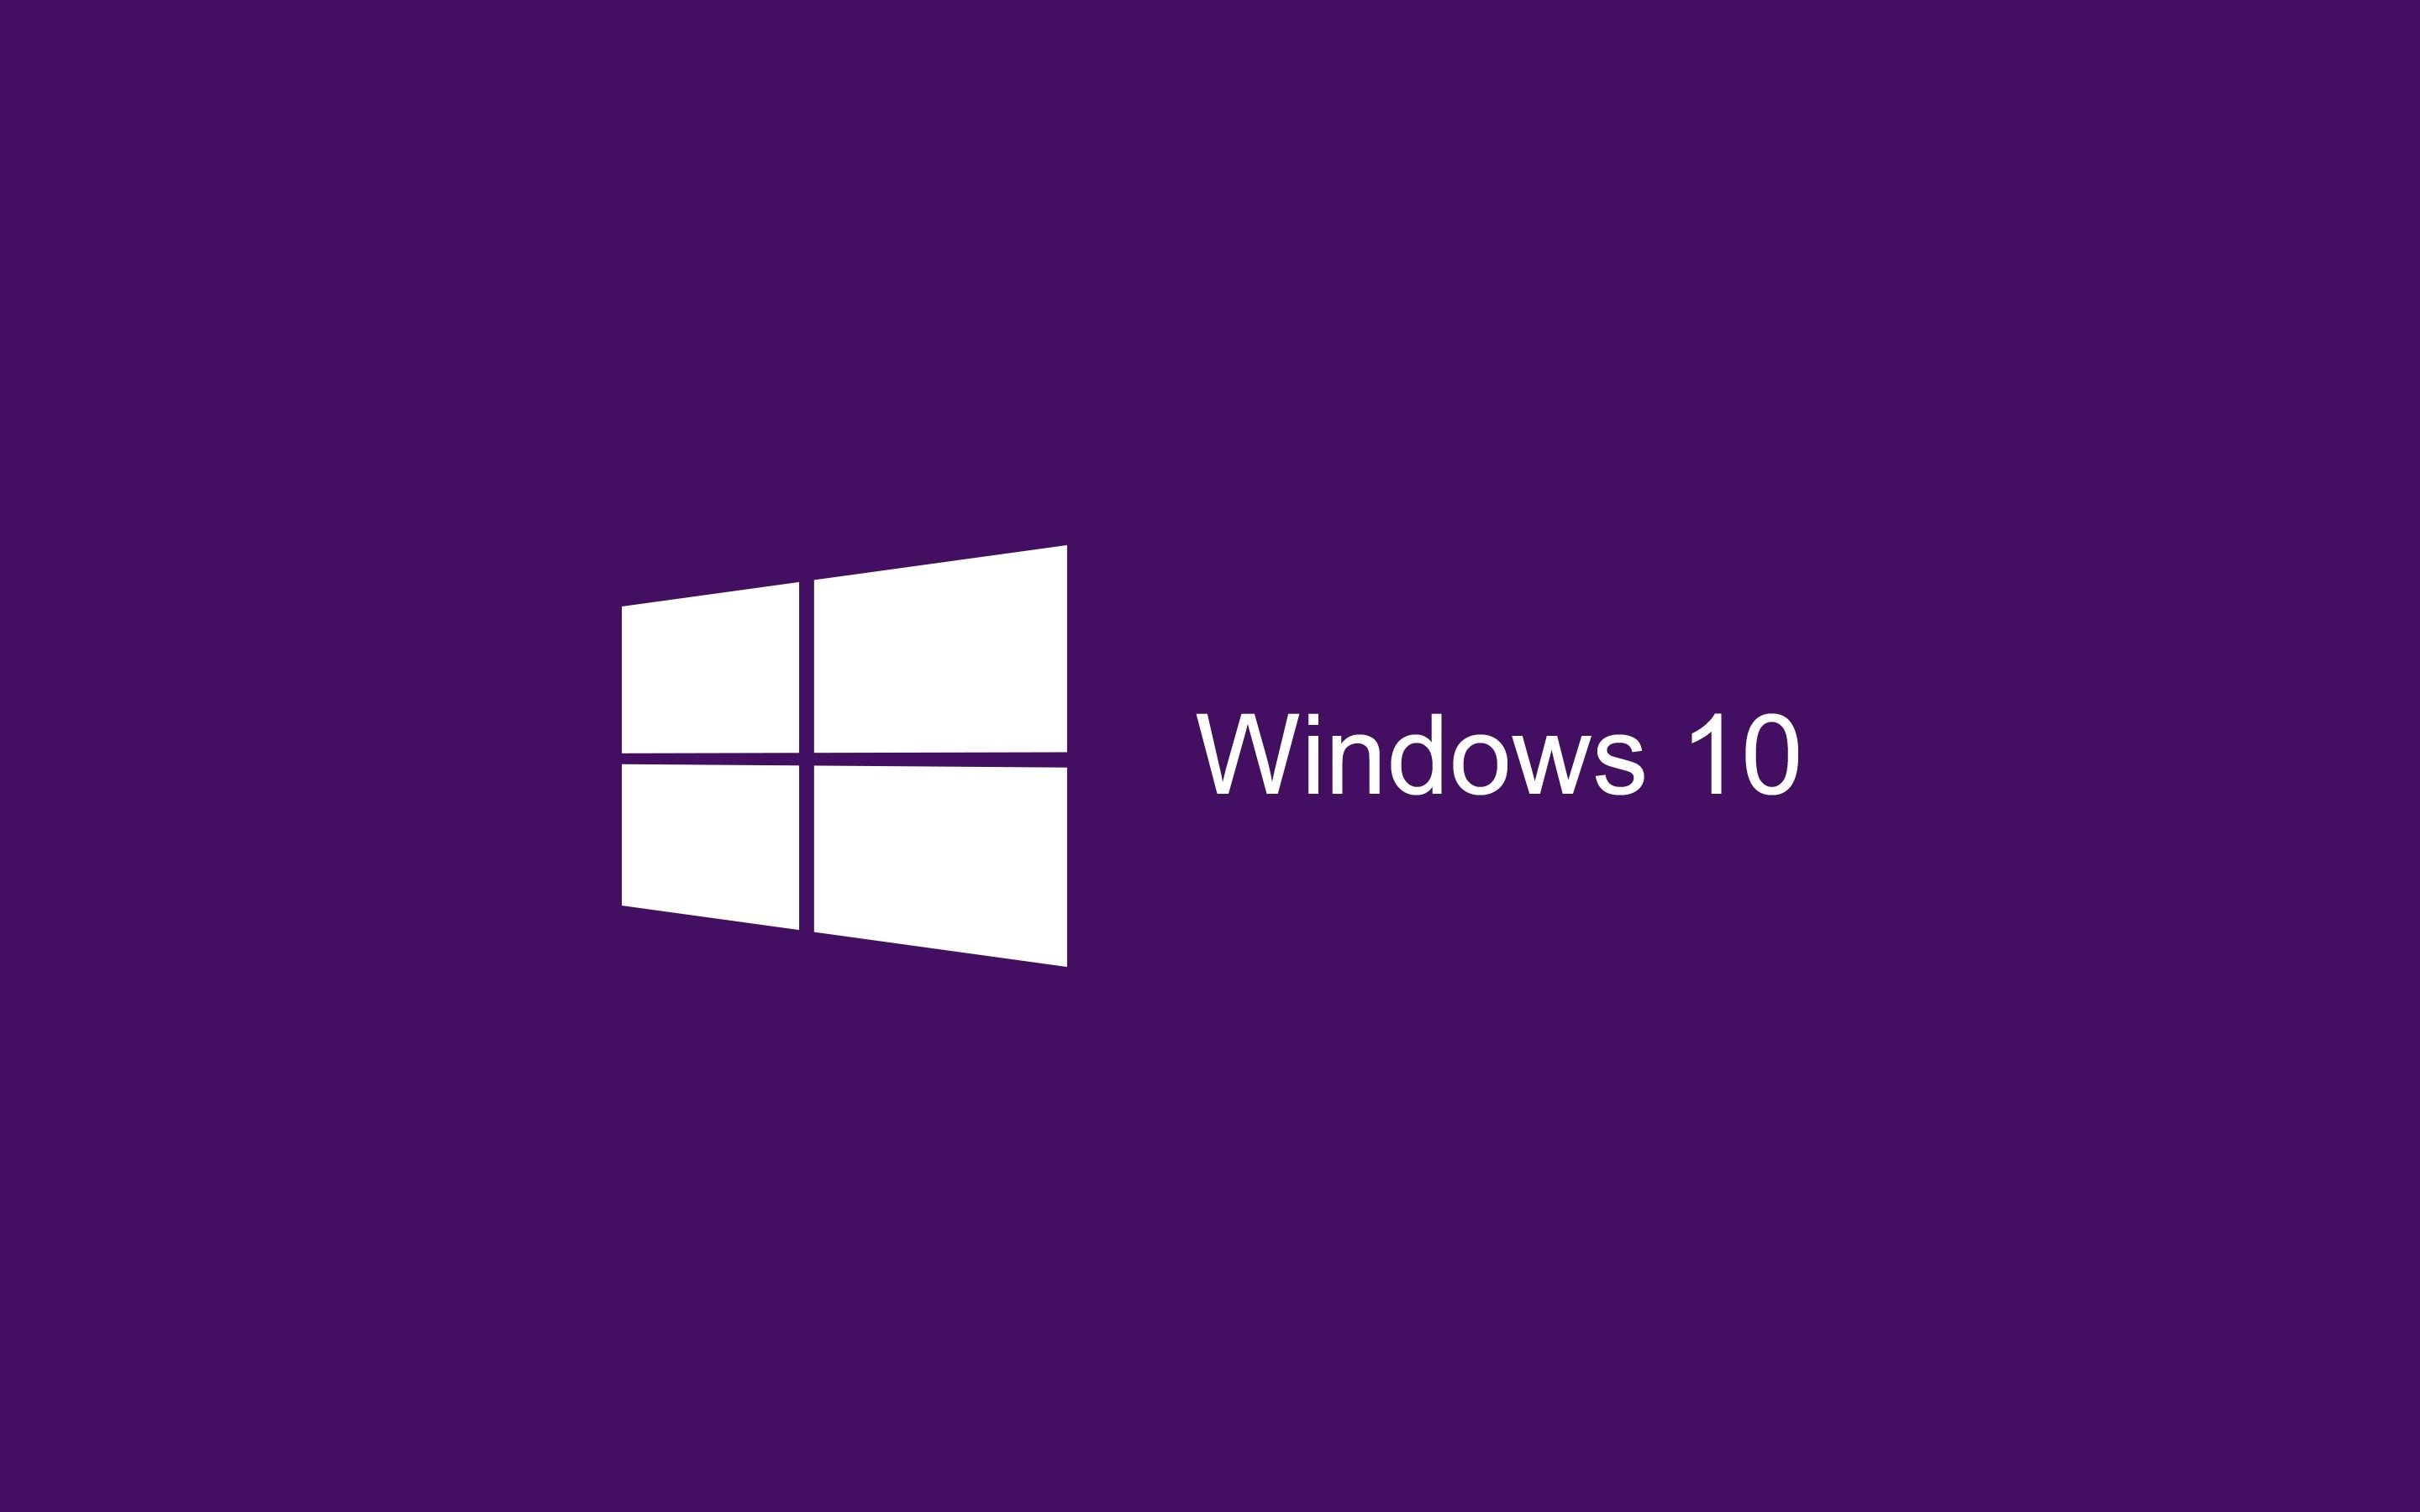 Microsoft Windows 10 Will Vanish Some Features And Apps When We Upgrade From Windows 7 8 1 Wallpaper Pc Wallpaper Windows 10 Windows 10